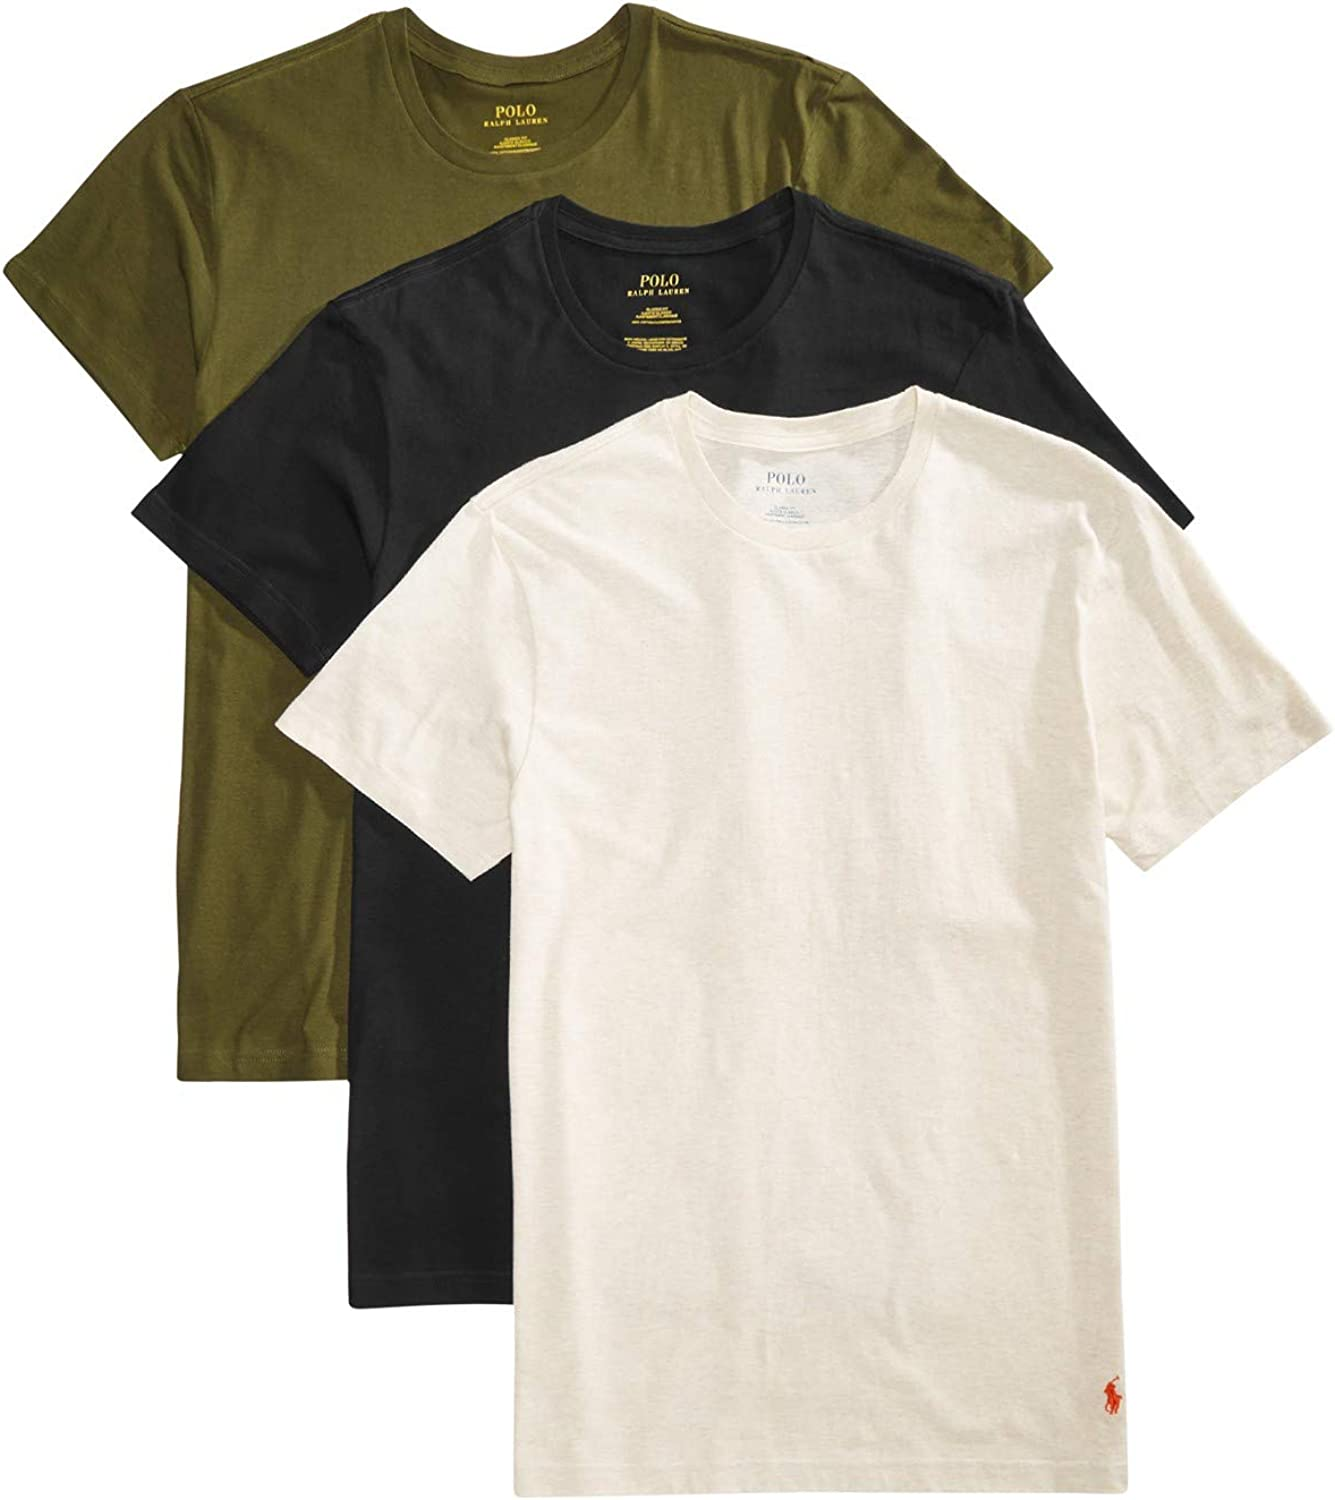 Polo Ralph Lauren Big /& Tall Men/'s Ivory Crew-Neck Short Sleeve T-Shirt